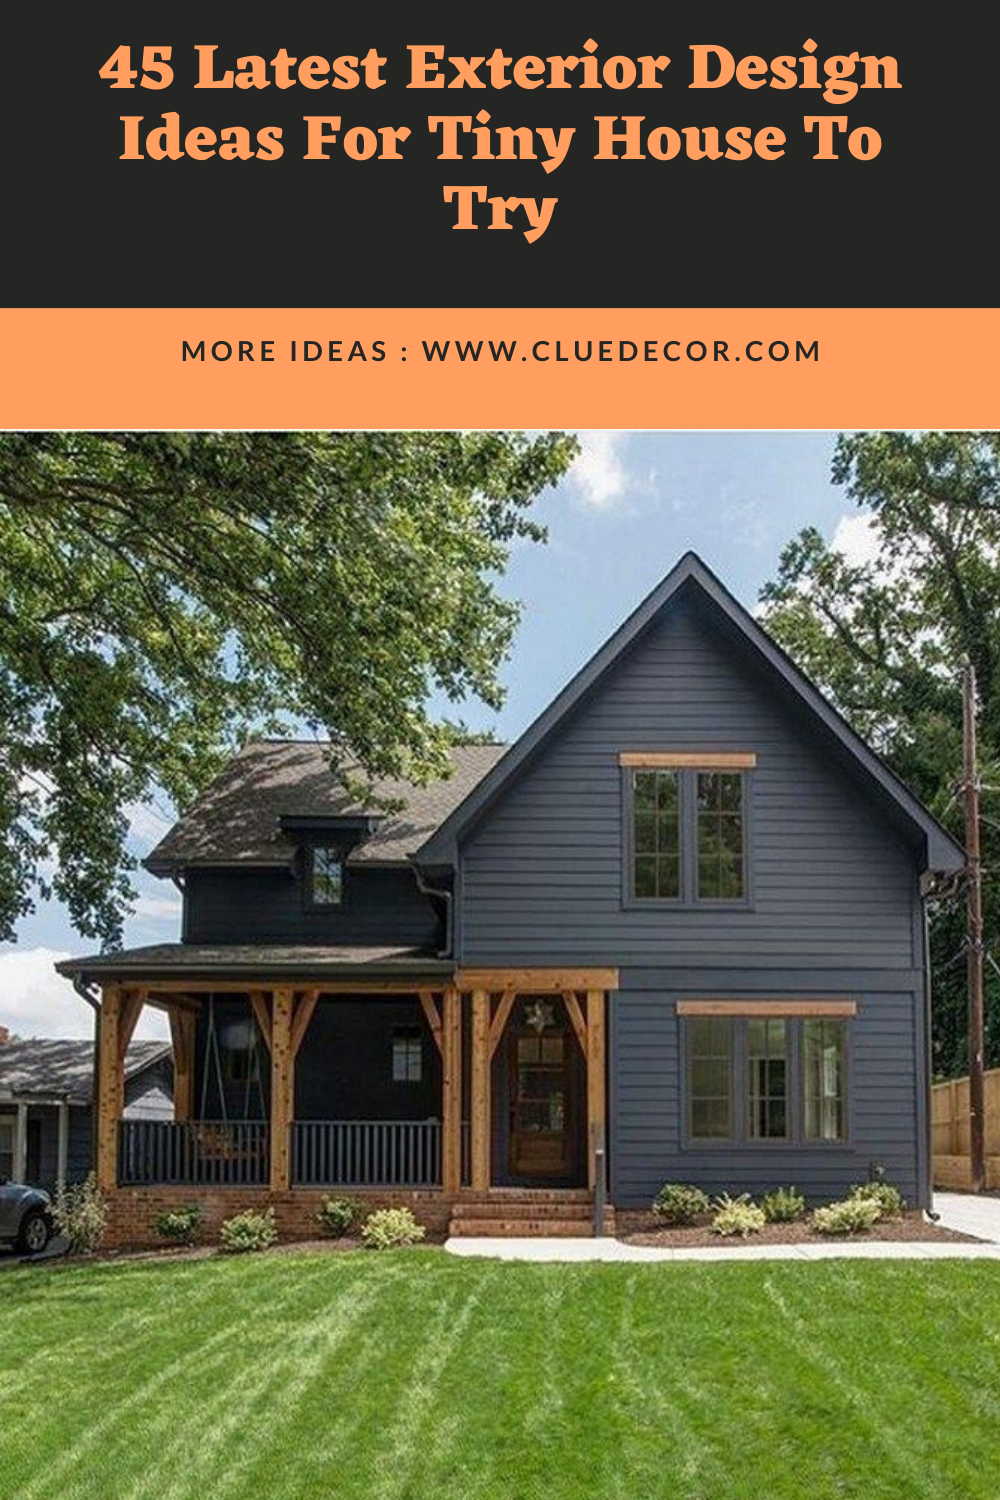 45 Latest Exterior Design Ideas For Tiny House To Try CLUE